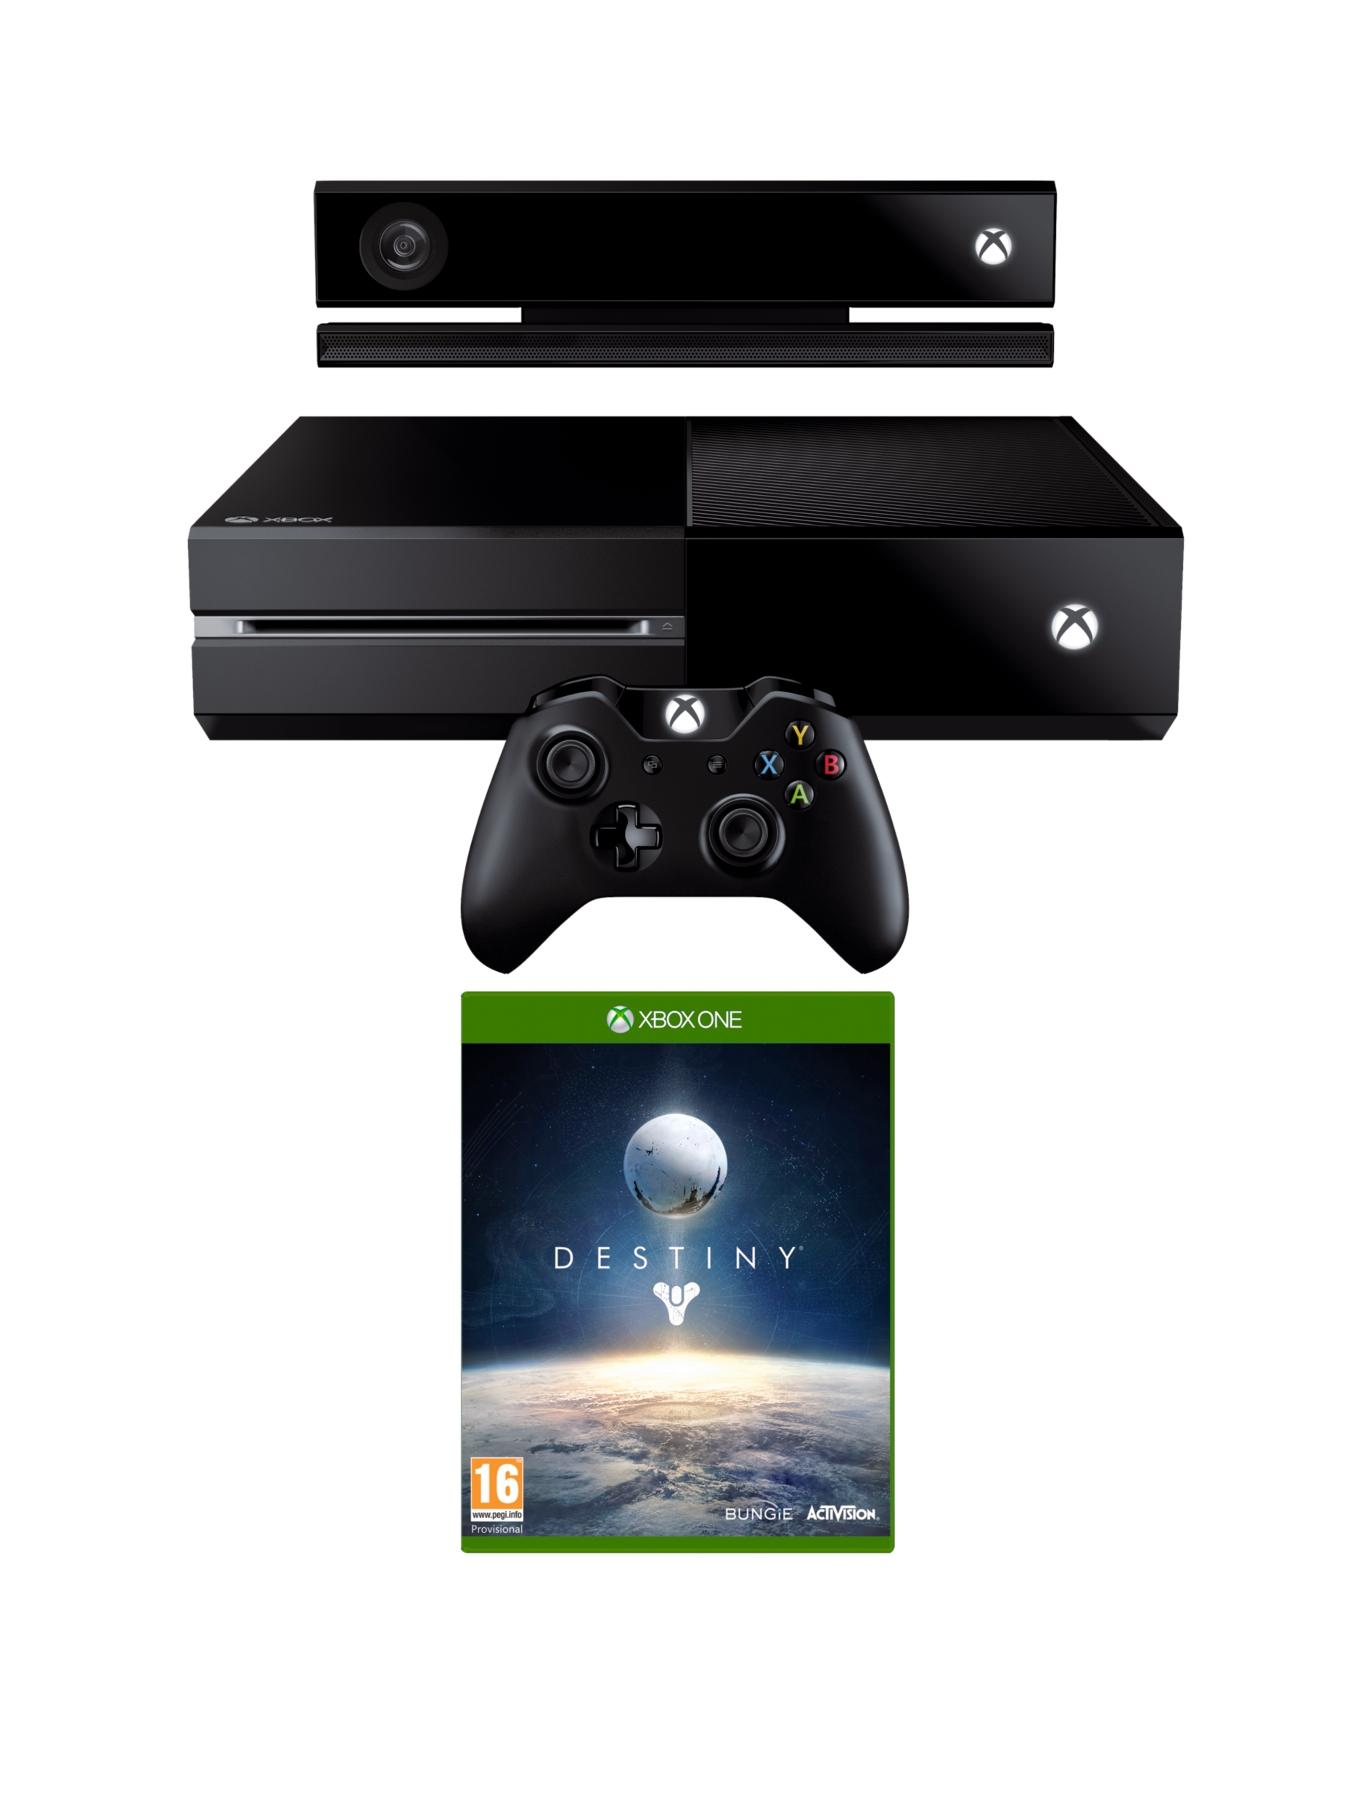 Console with Kinect and Destiny